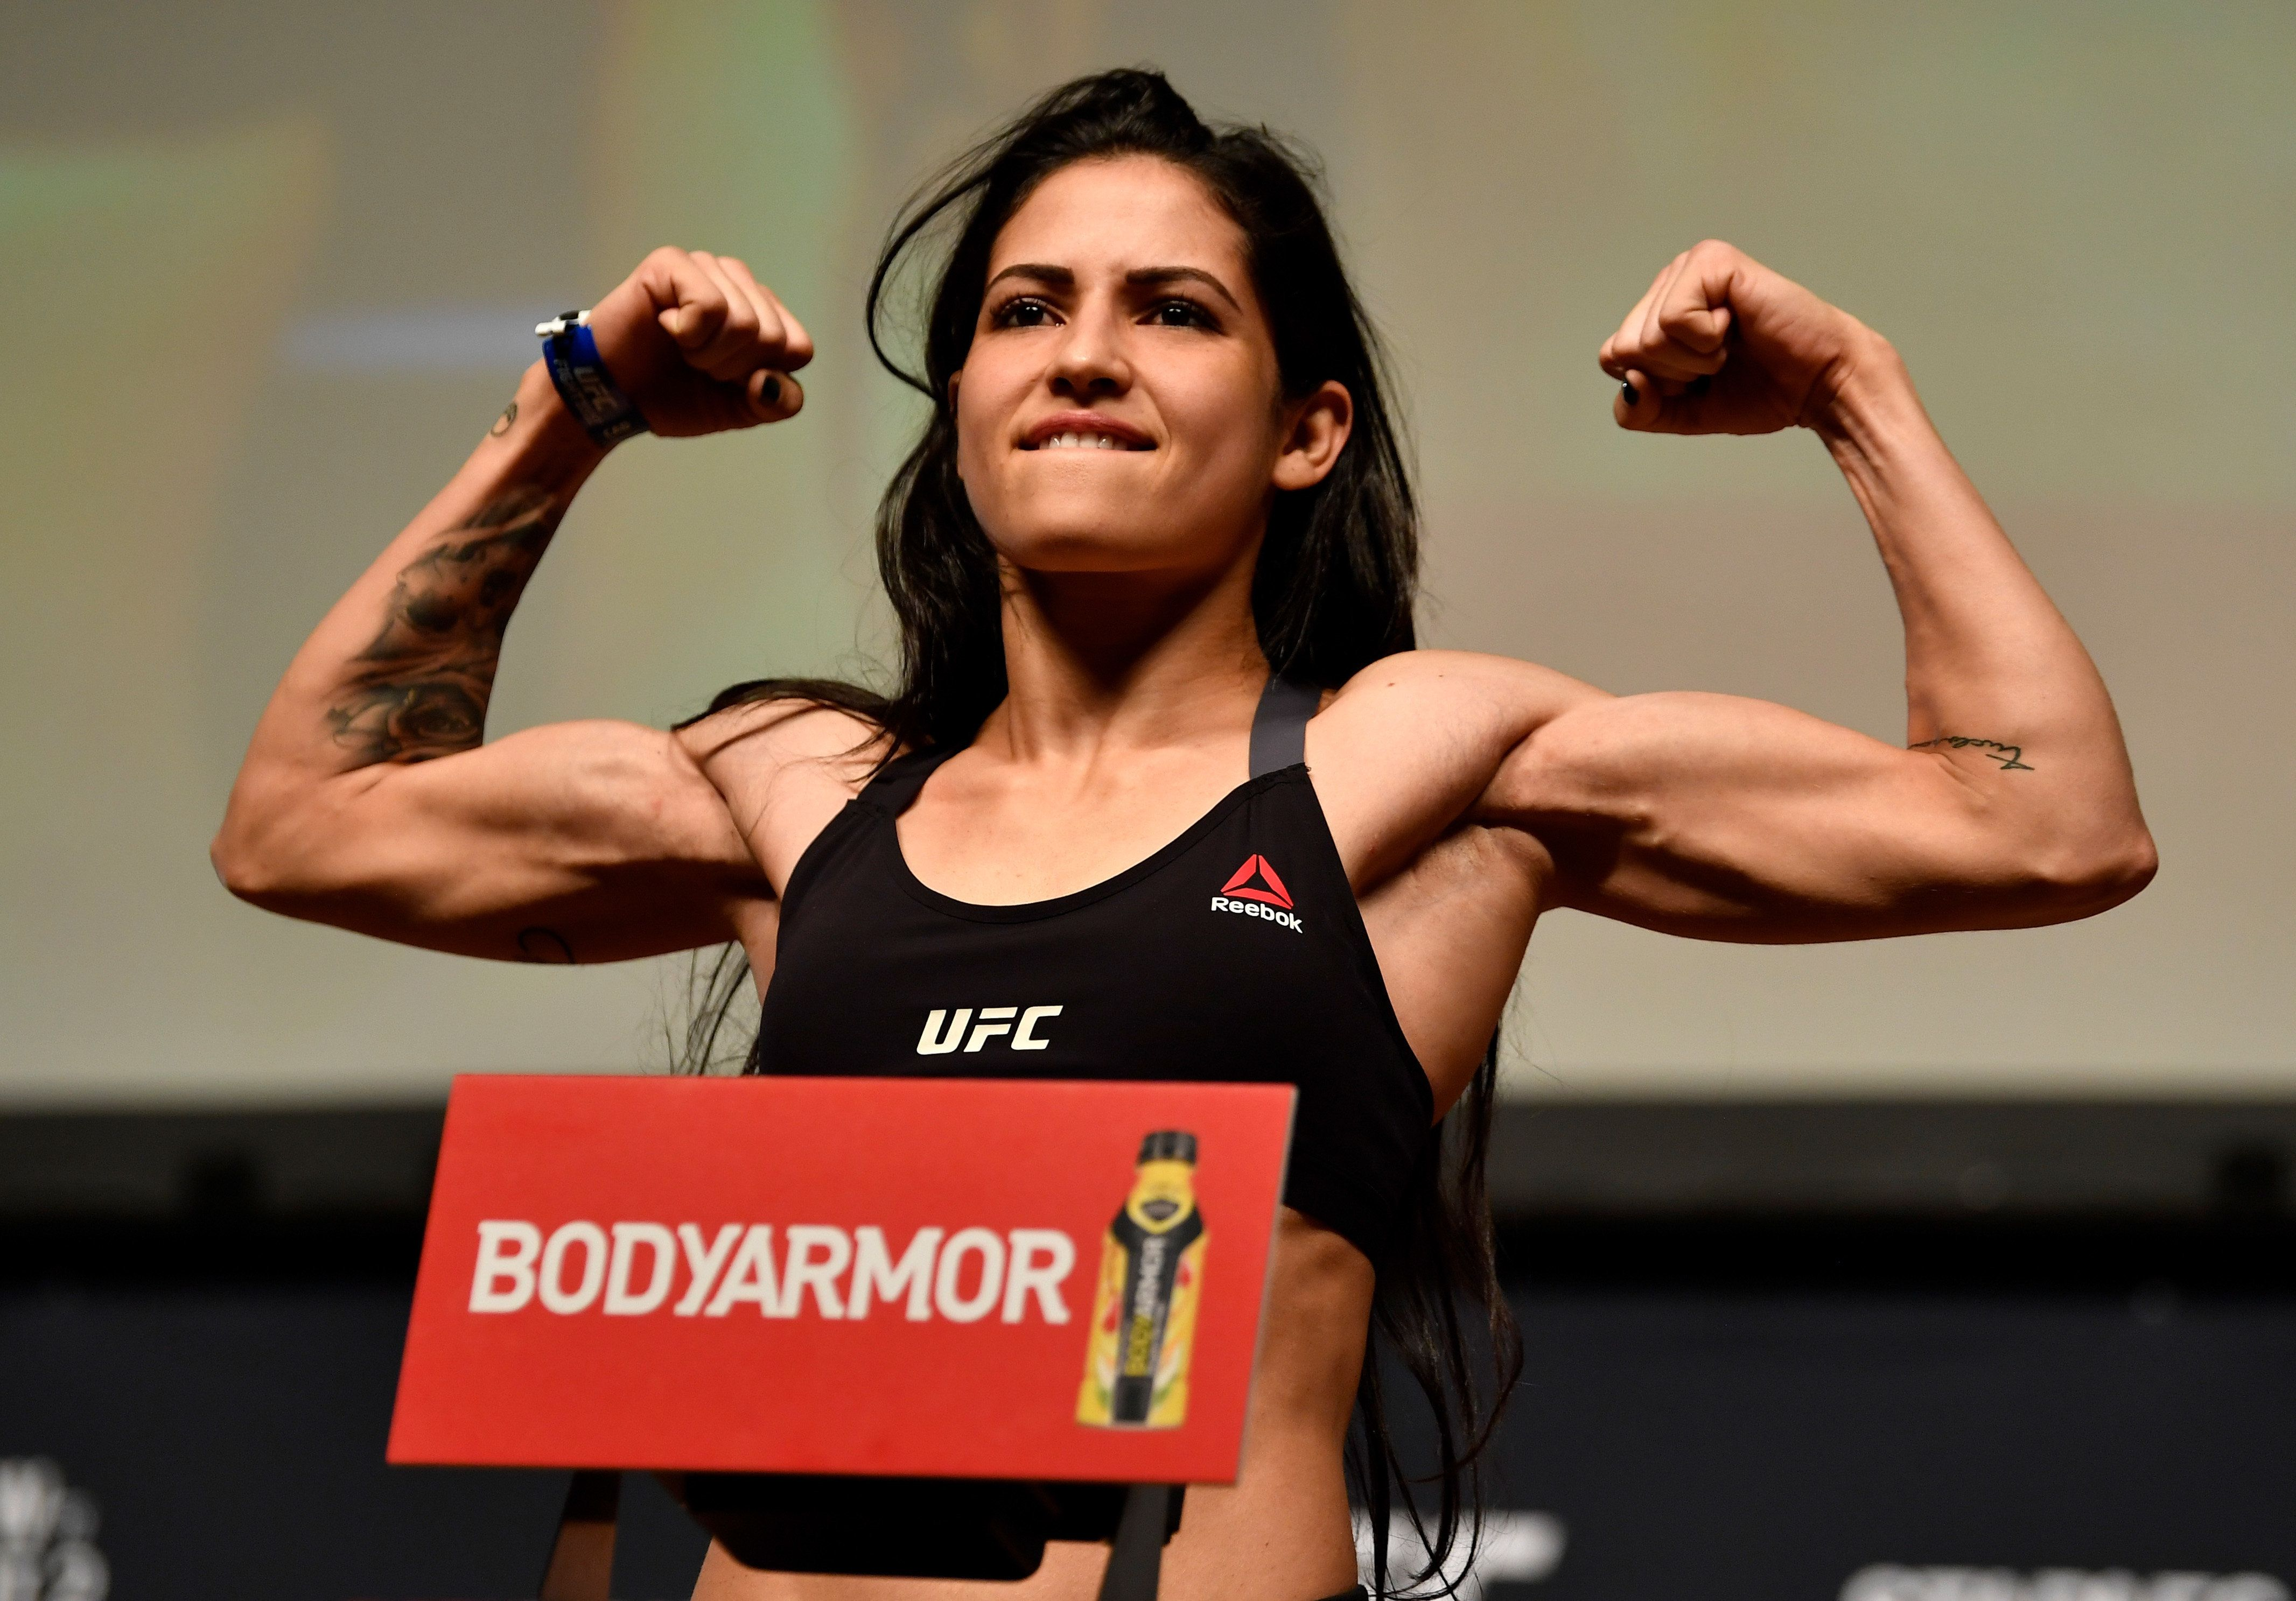 UFC Fighter Polyana Viana Beats Up Alleged Robber, Shows Him Who's